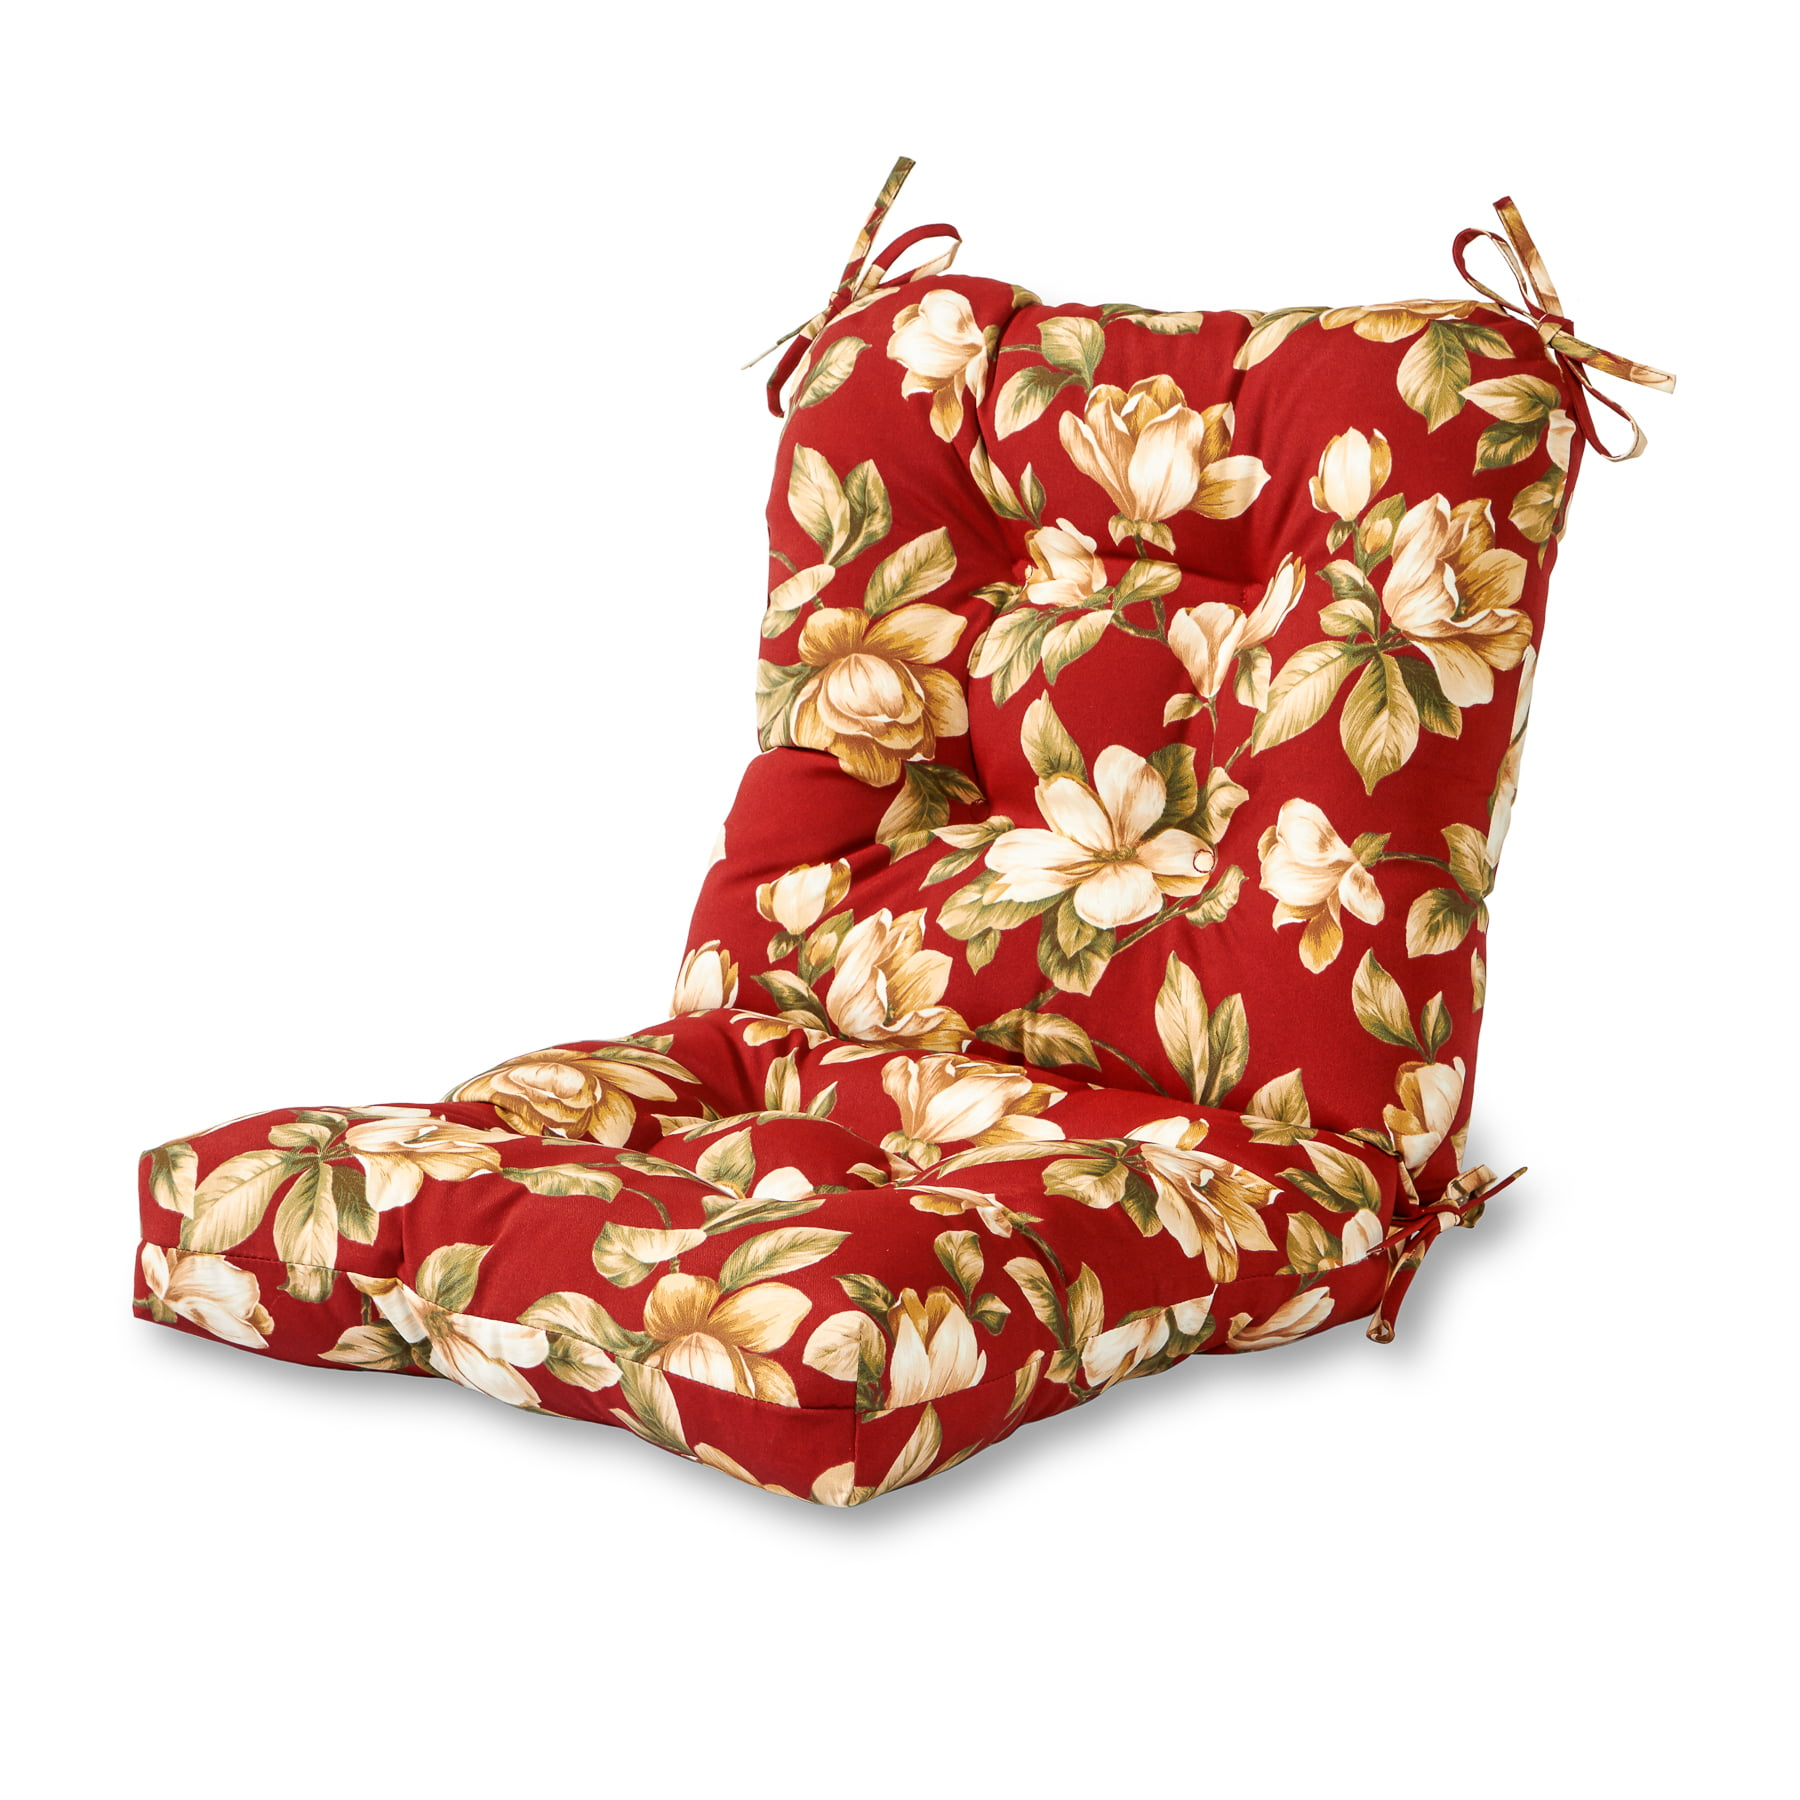 Buy Greendale Home Fashions Outdoor Seat/Back Chair Cushion, Roma Floral  Only $26.93